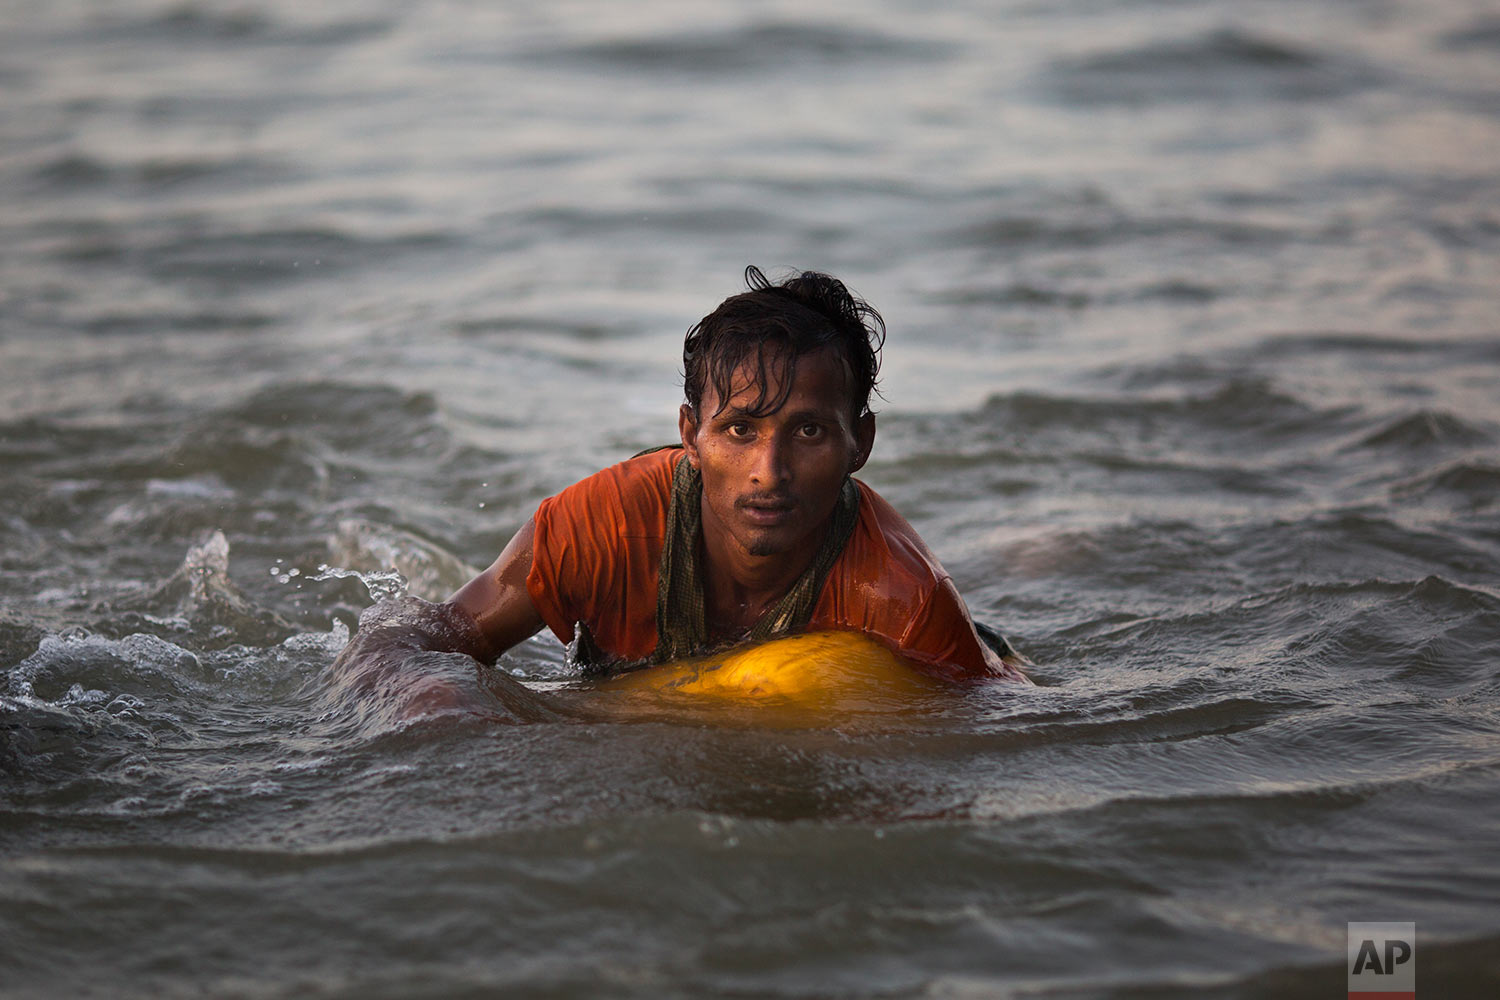 In this Nov. 4, 2017, photo, Rohingya Muslim Abdul Karim, 19, uses a yellow plastic oil container as a flotation device as he swims the Naf river while crossing the Myanmar-Bangladesh border in Shah Porir Dwip, Bangladesh. (AP Photo/Bernat Armangue)